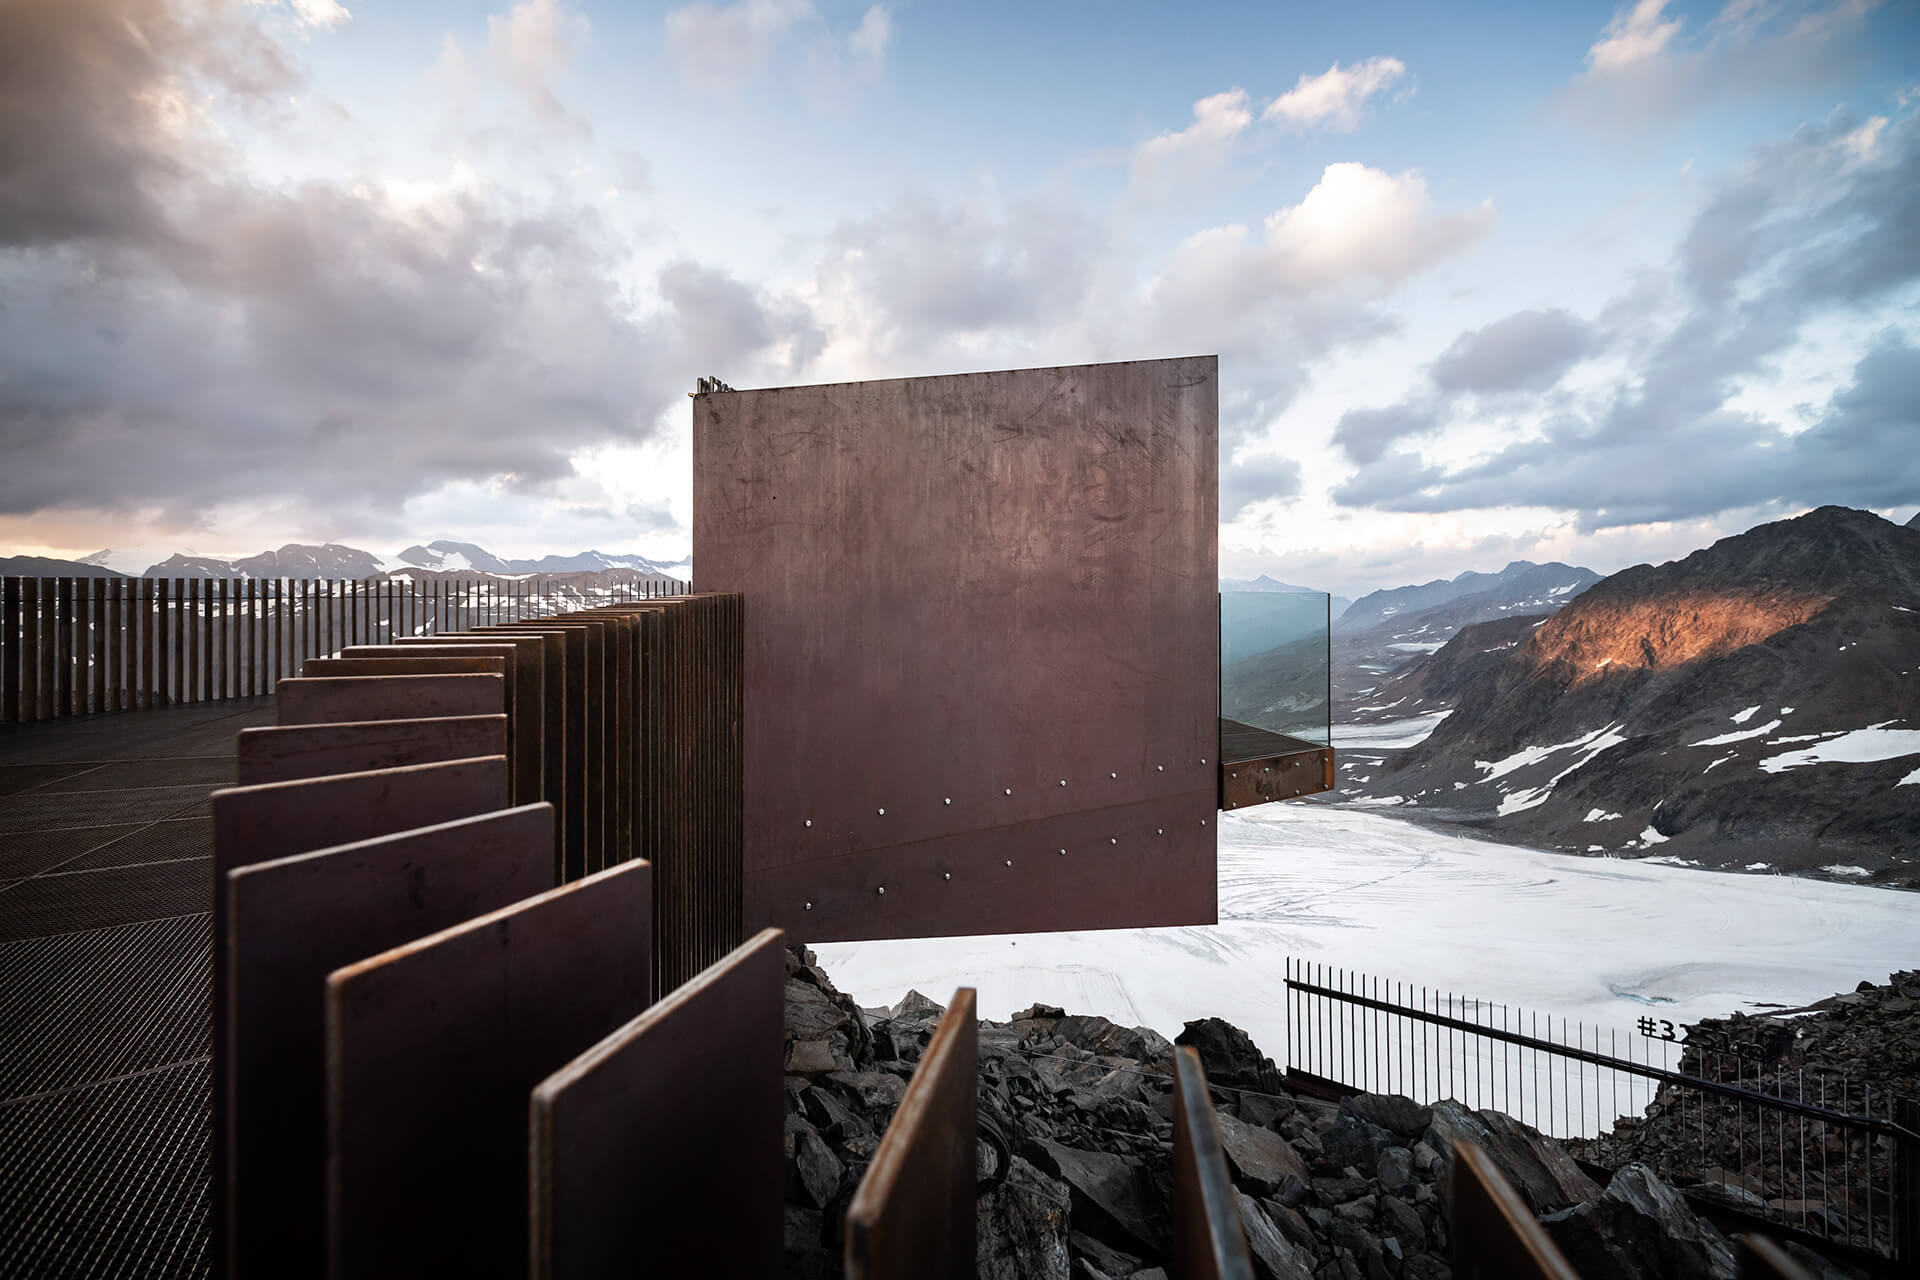 The modern materials of the observation deck blend evenly into the landscape| Ötzi Peak 3251m | noa* network of architecture | STIRworld